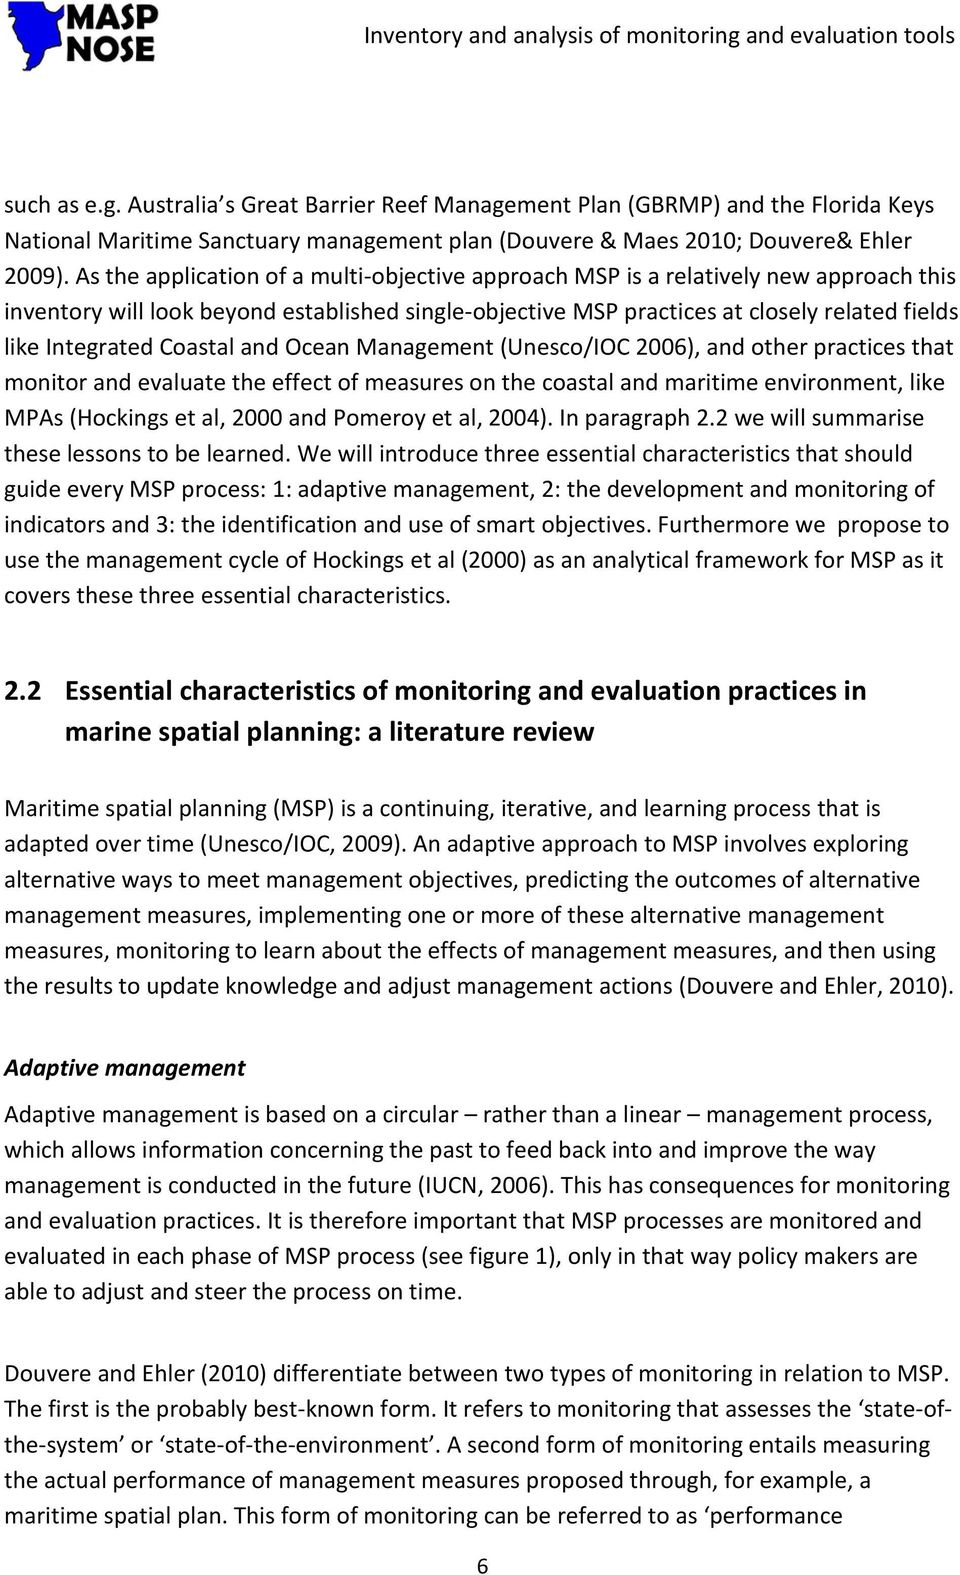 Coastal and Ocean Management (Unesco/IOC 2006), and other practices that monitor and evaluate the effect of measures on the coastal and maritime environment, like MPAs (Hockings et al, 2000 and